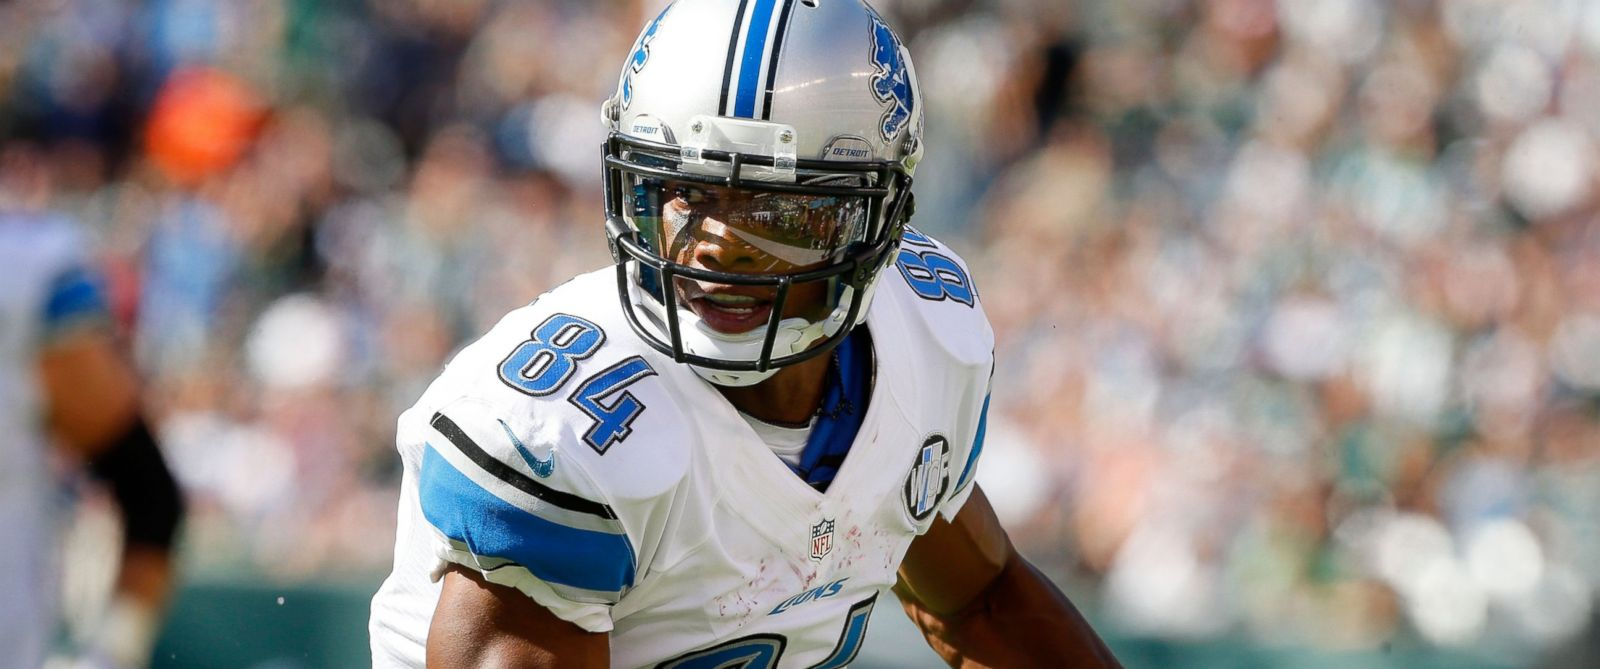 PHOTO:Ryan Broyles of the Detroit Lions in action against the New York Jets, Sept. 28, 2014, at MetLife Stadium in East Rutherford, N.J.